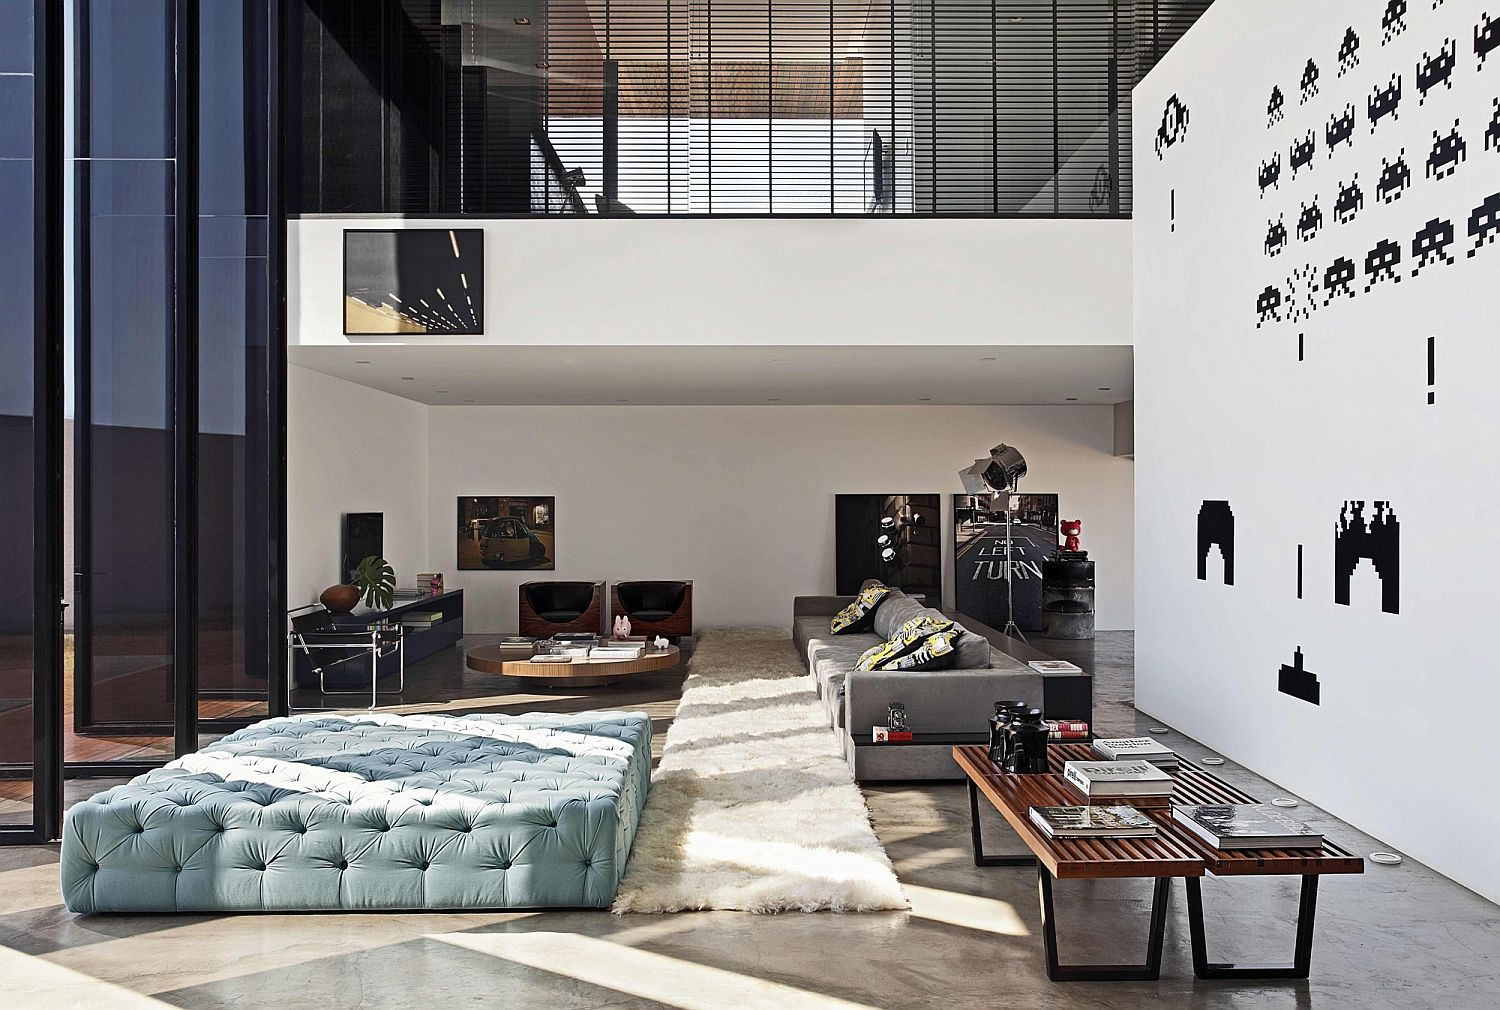 Central double height living area with ample lighting